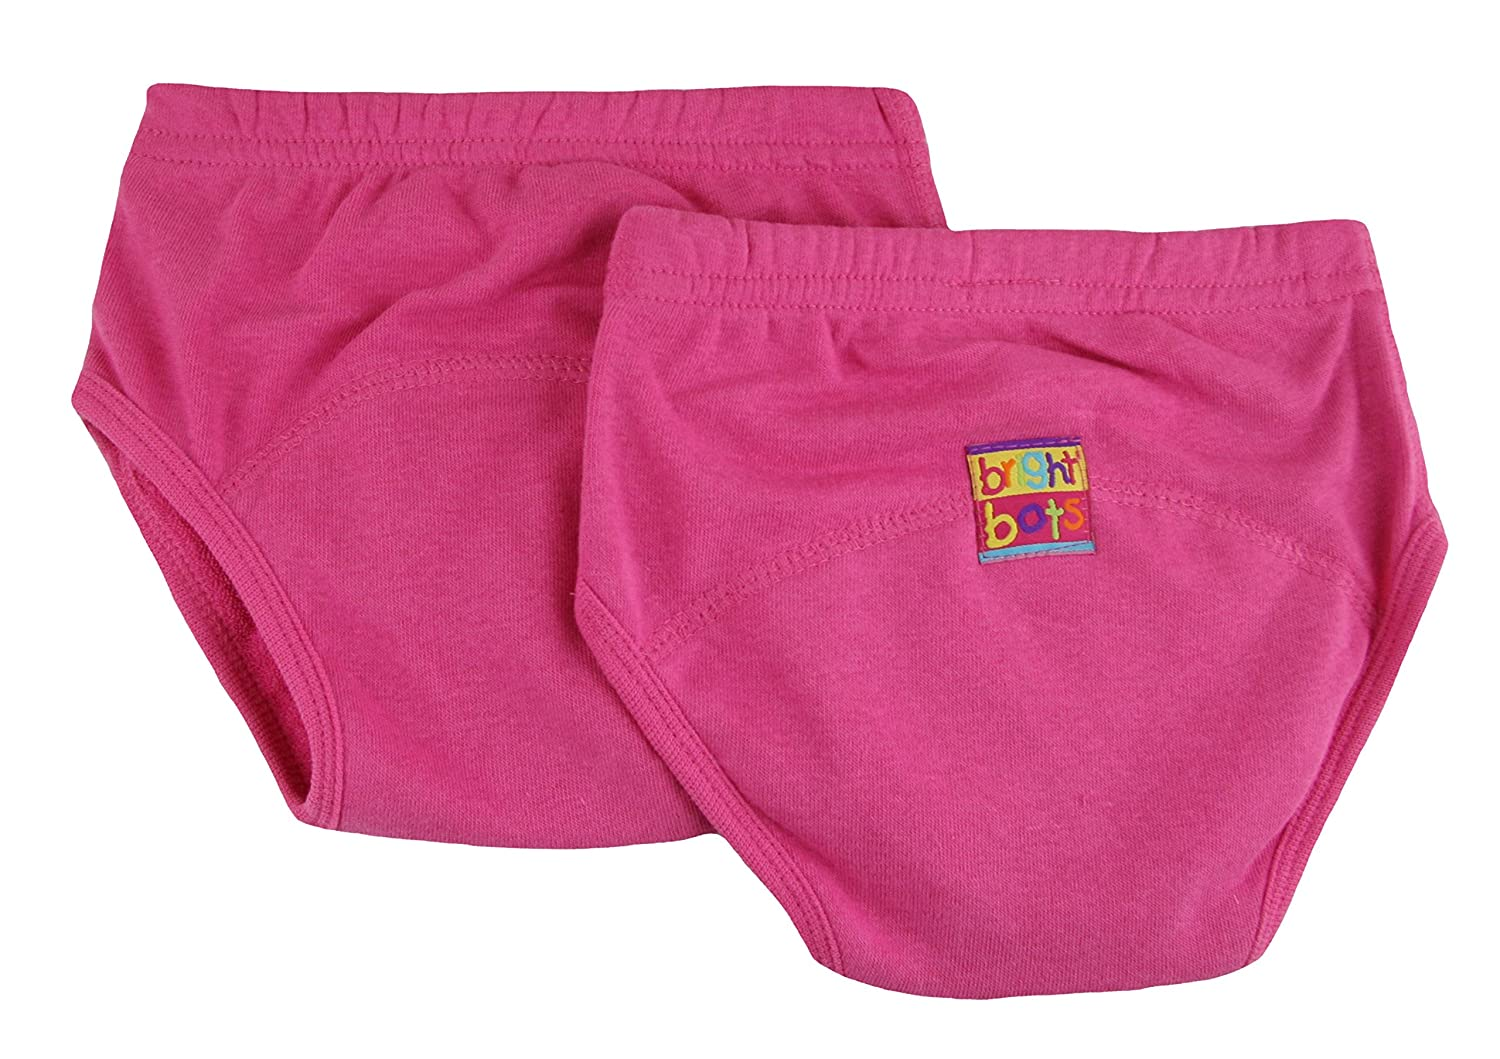 Bright Bots Potty Training Pants (Pack of 2, Pink, Small) 2AAETRA1-2US